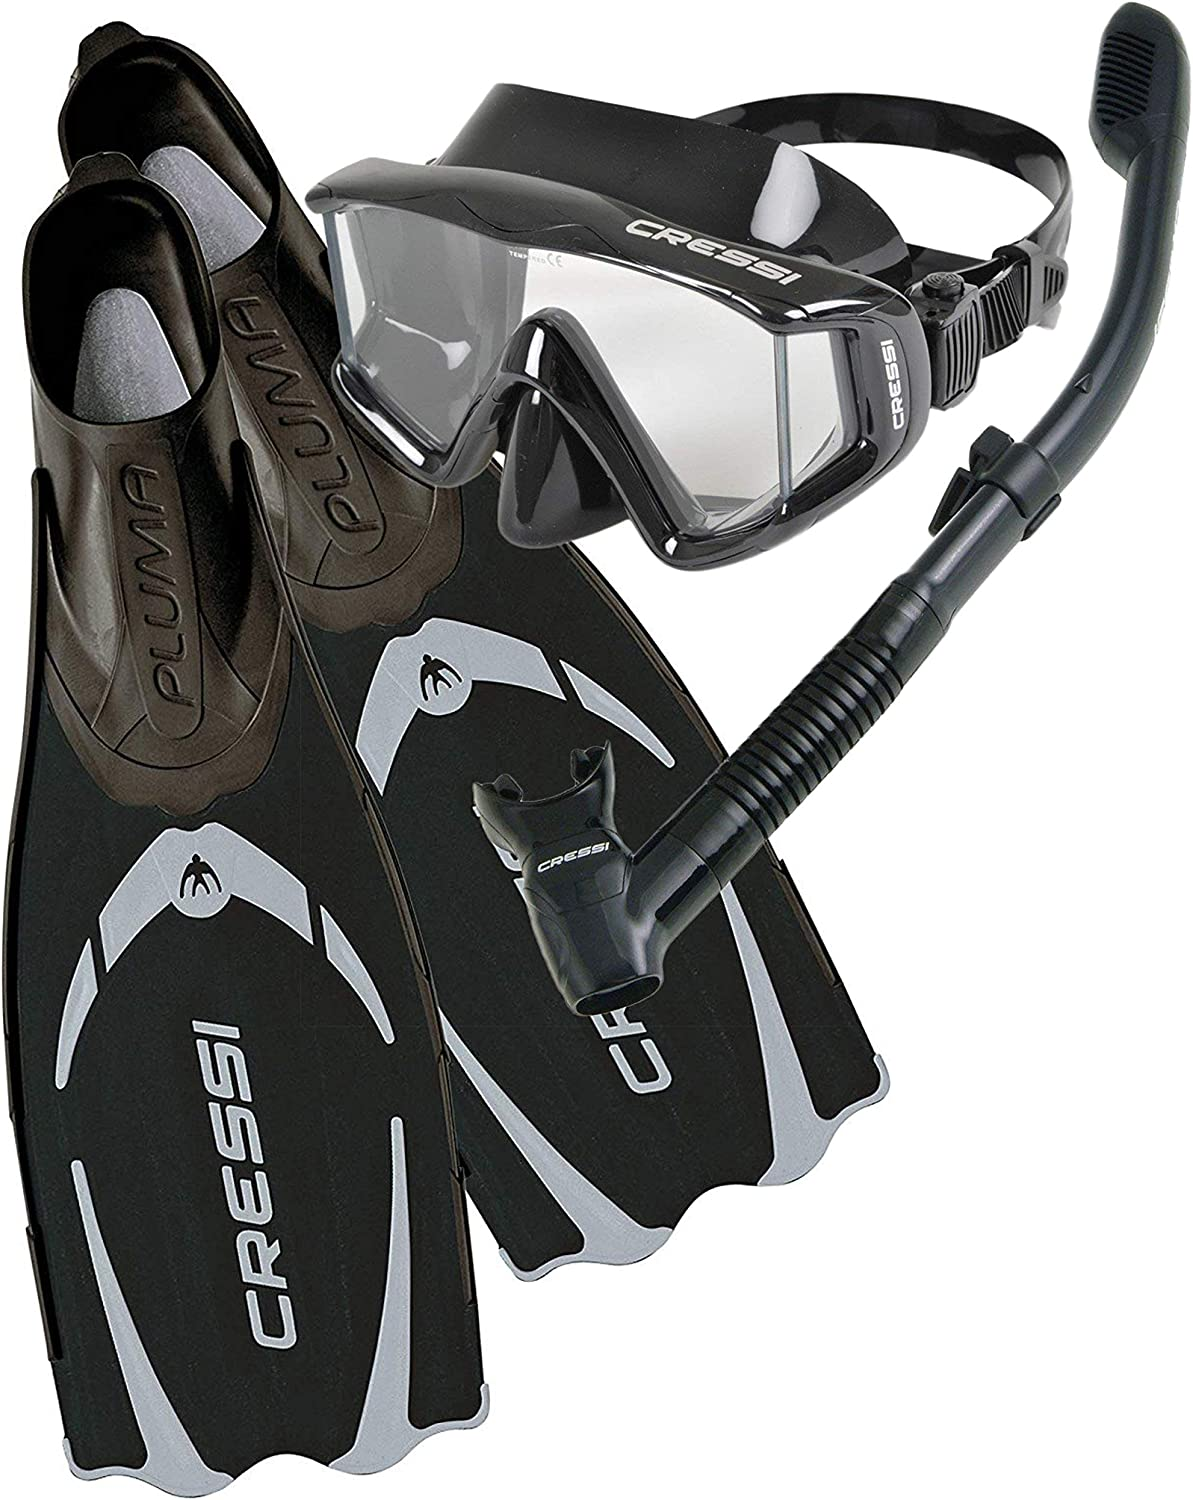 Designed in Italy Cressi Travel-Friendly Light Snorkeling Set